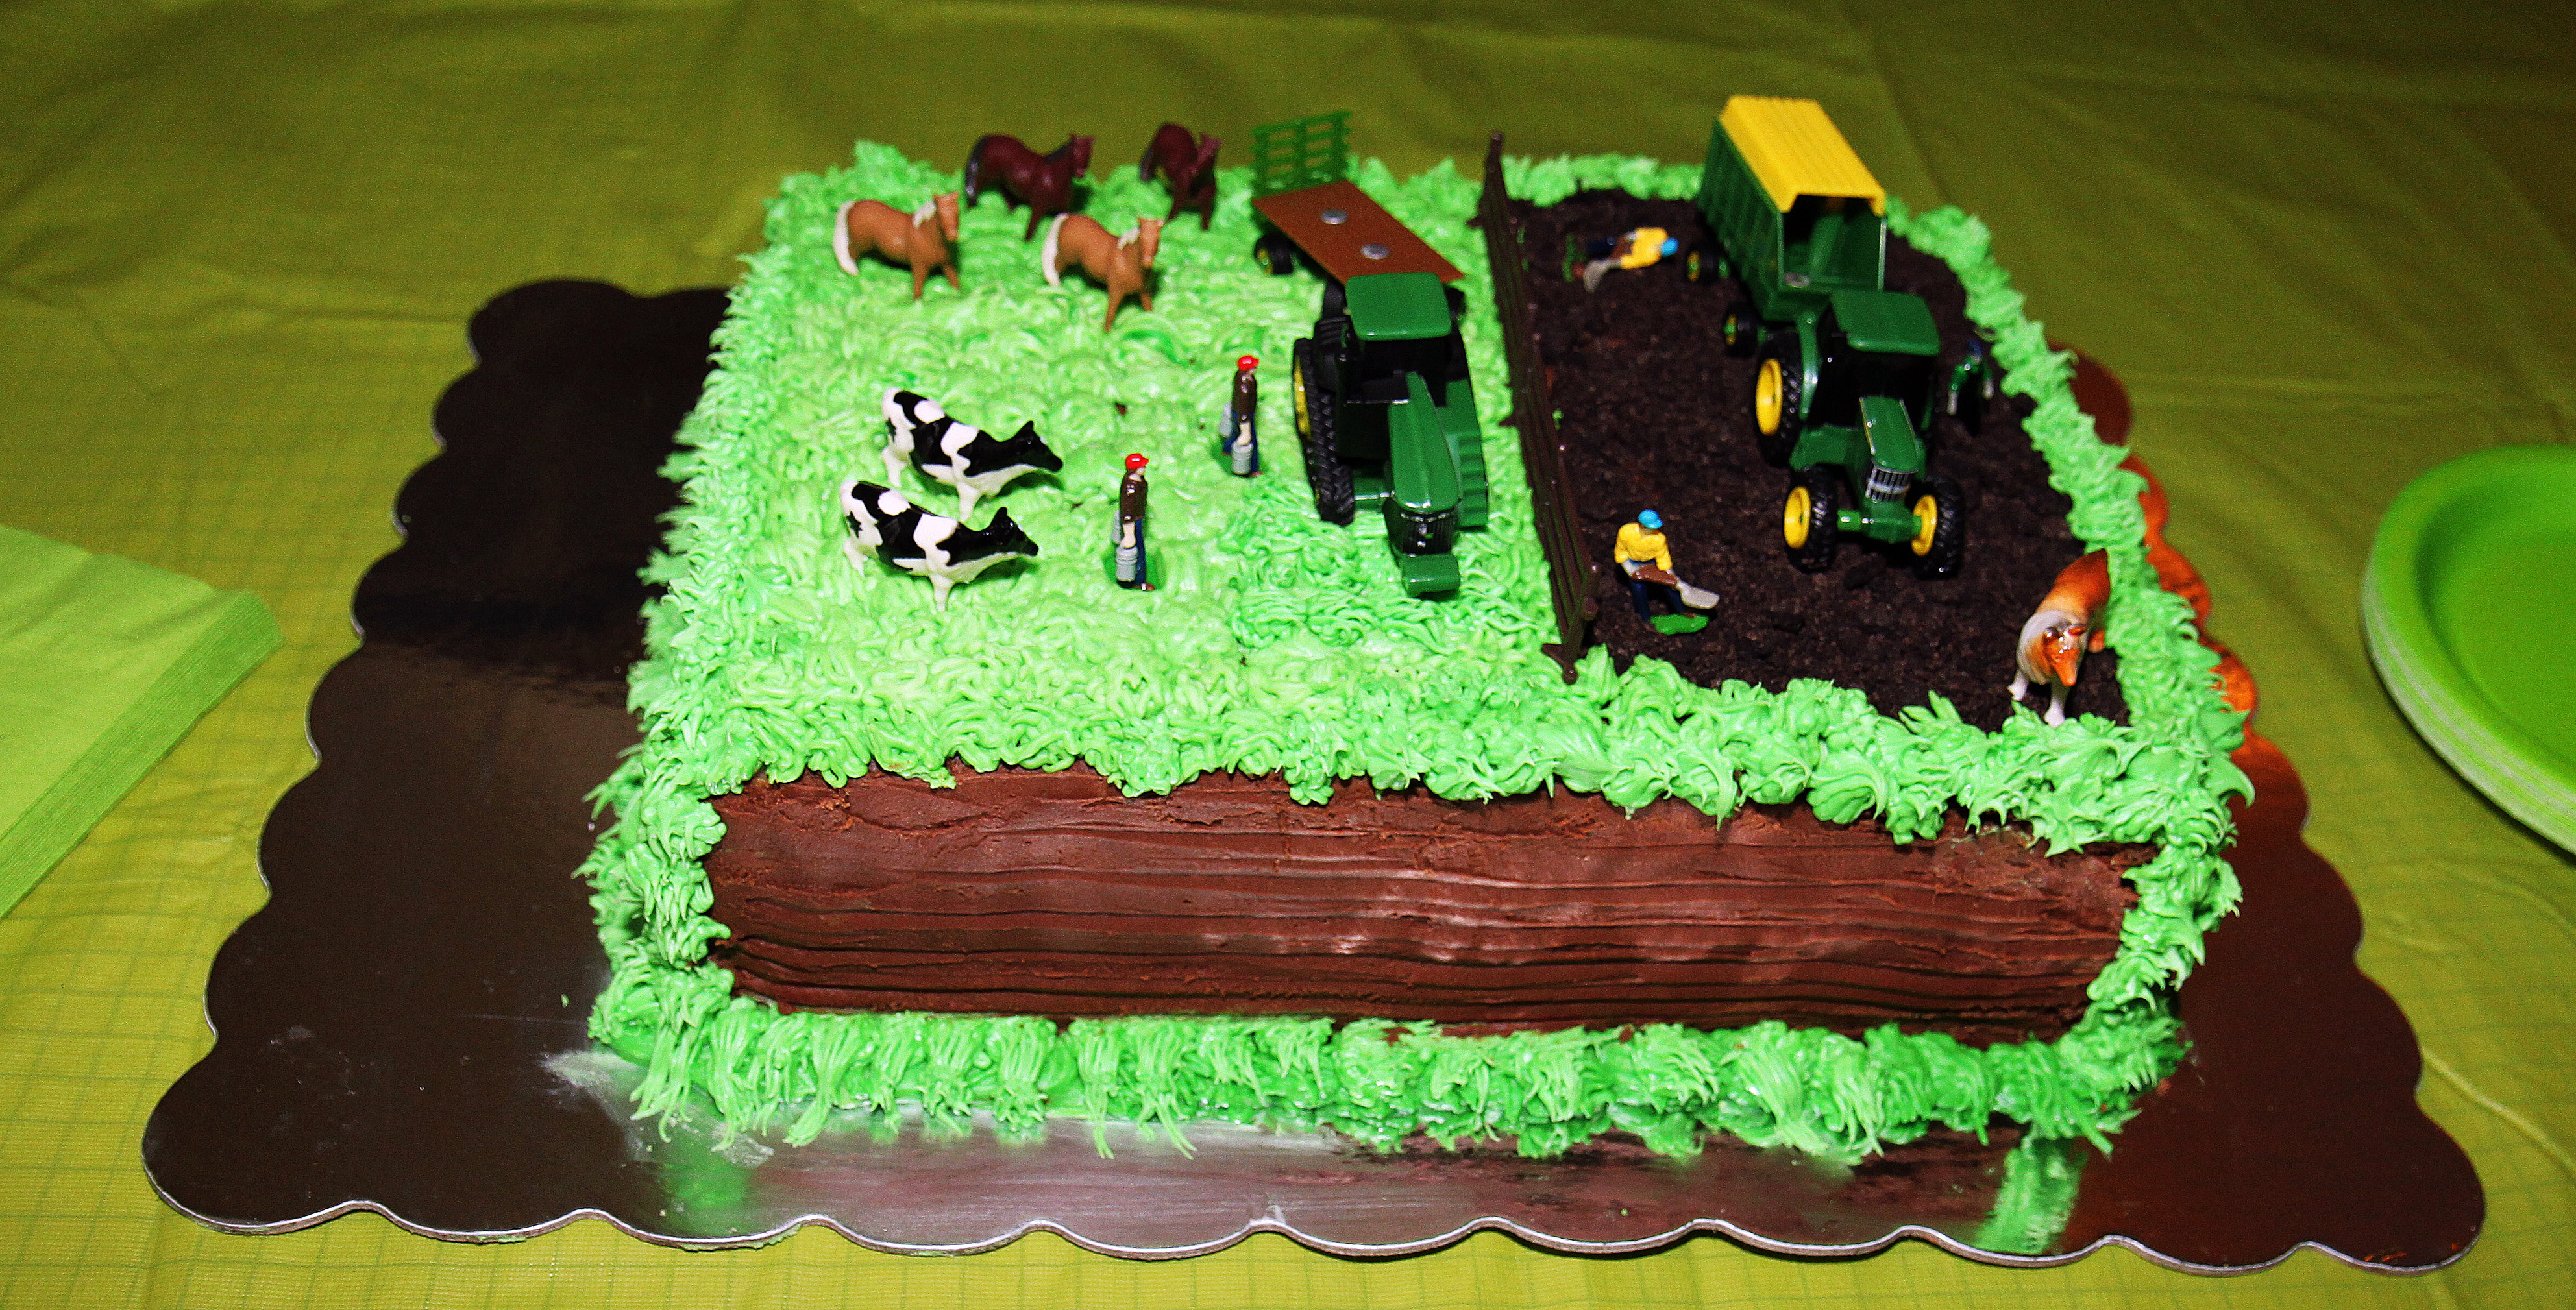 The Tractor Cake!!! Mommy Ramblings